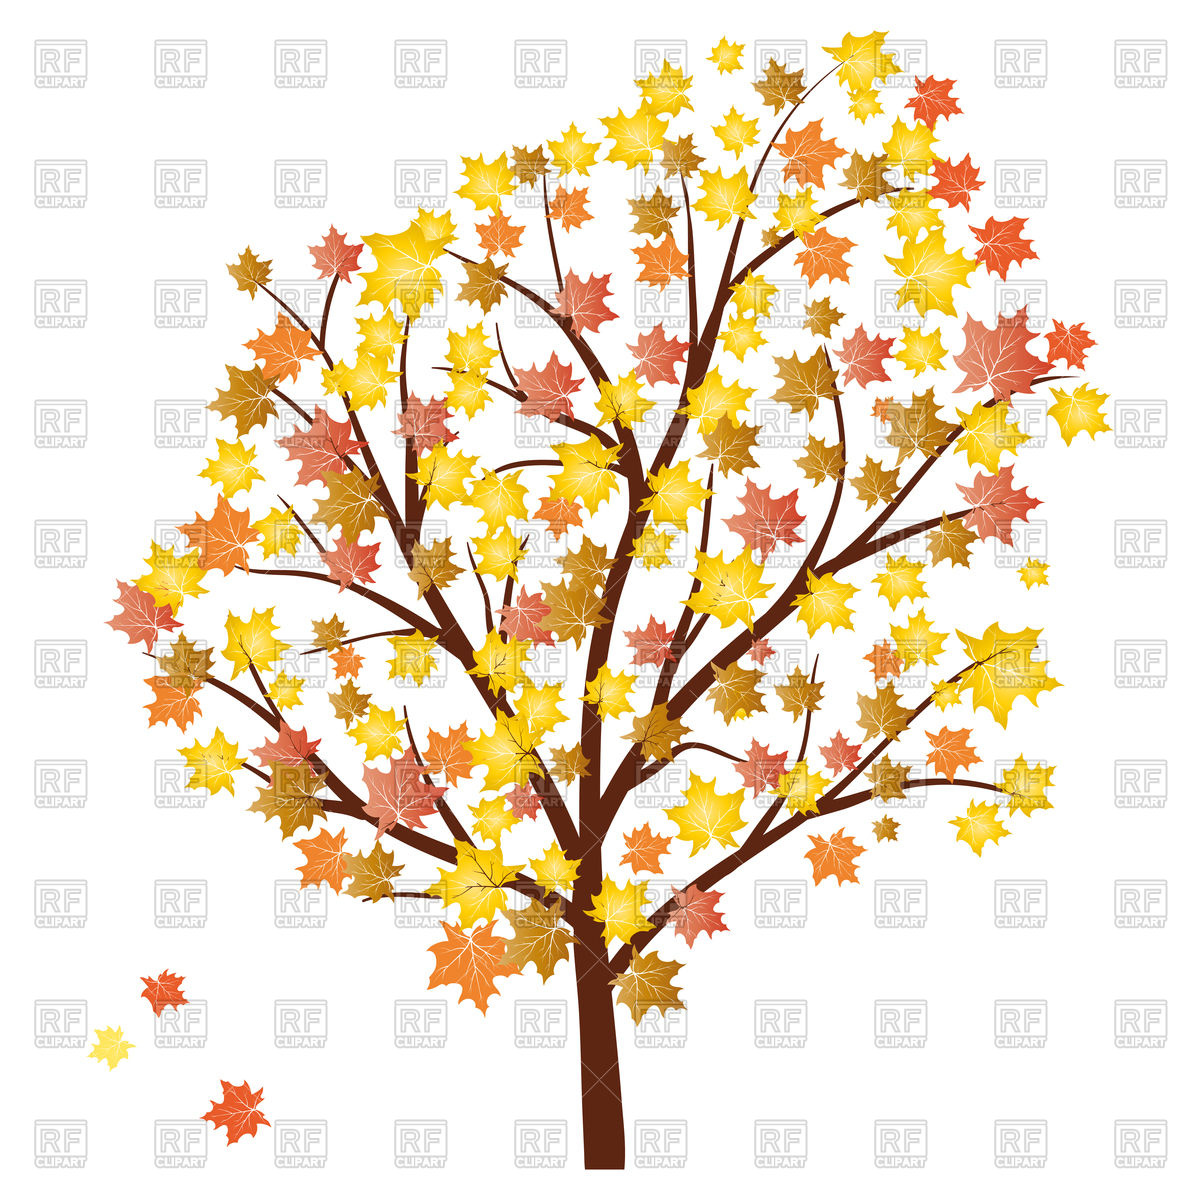 free fall clipart at getdrawings com free for personal use free rh getdrawings com fall leaves background clipart fall tree clipart background